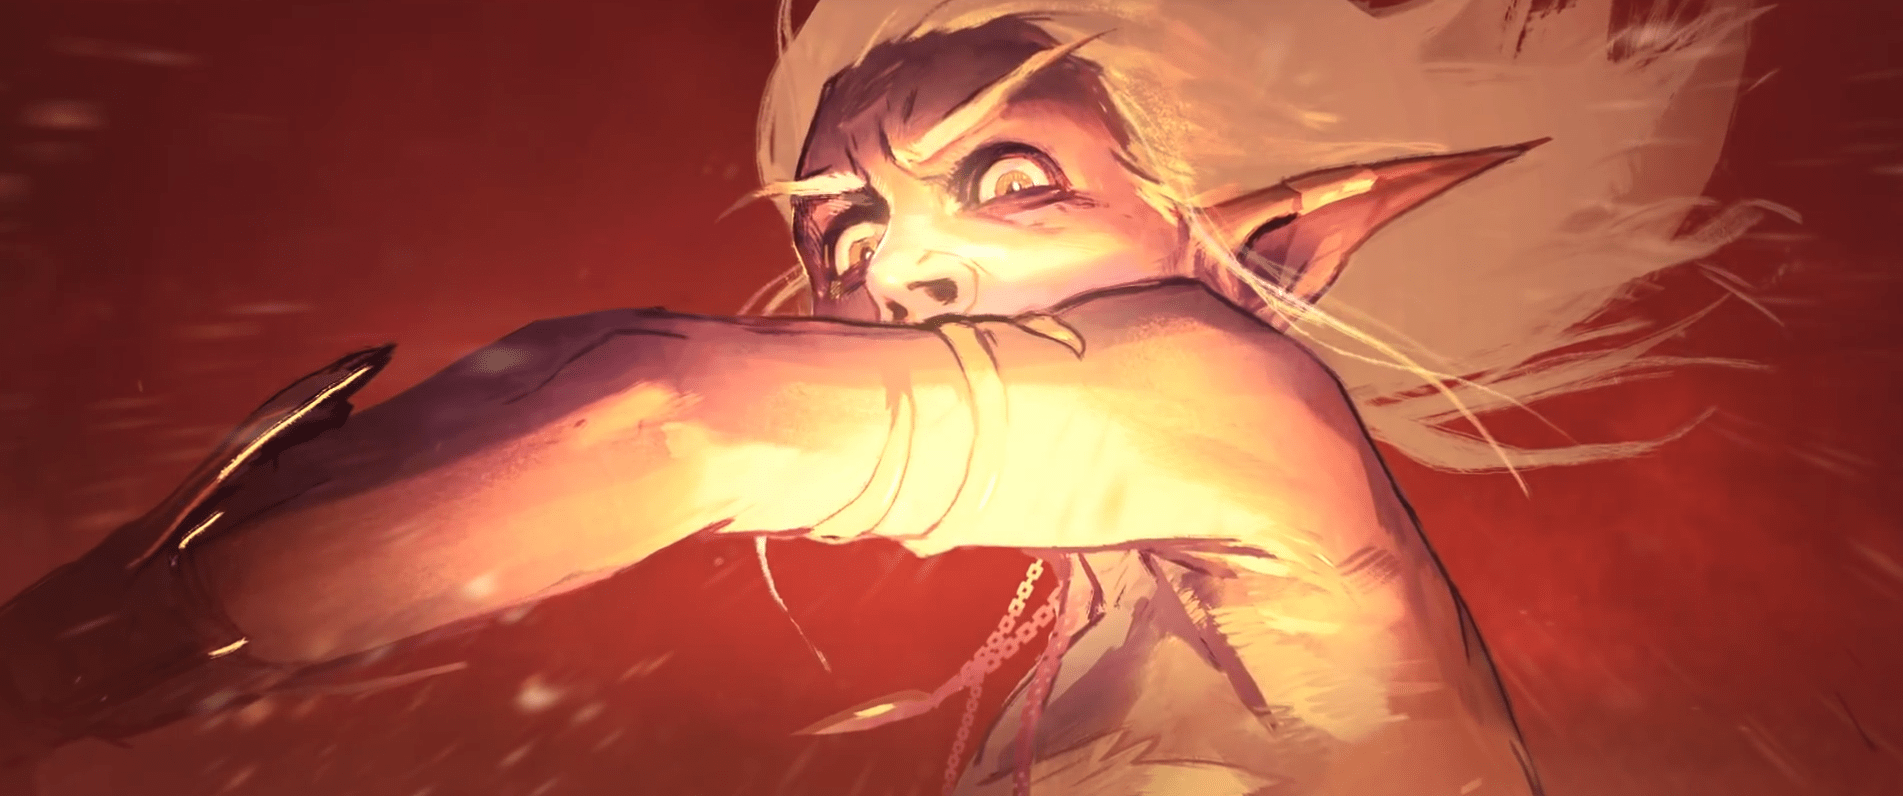 The final Battle for Azeroth Warbringers short is cosmic, watery horror